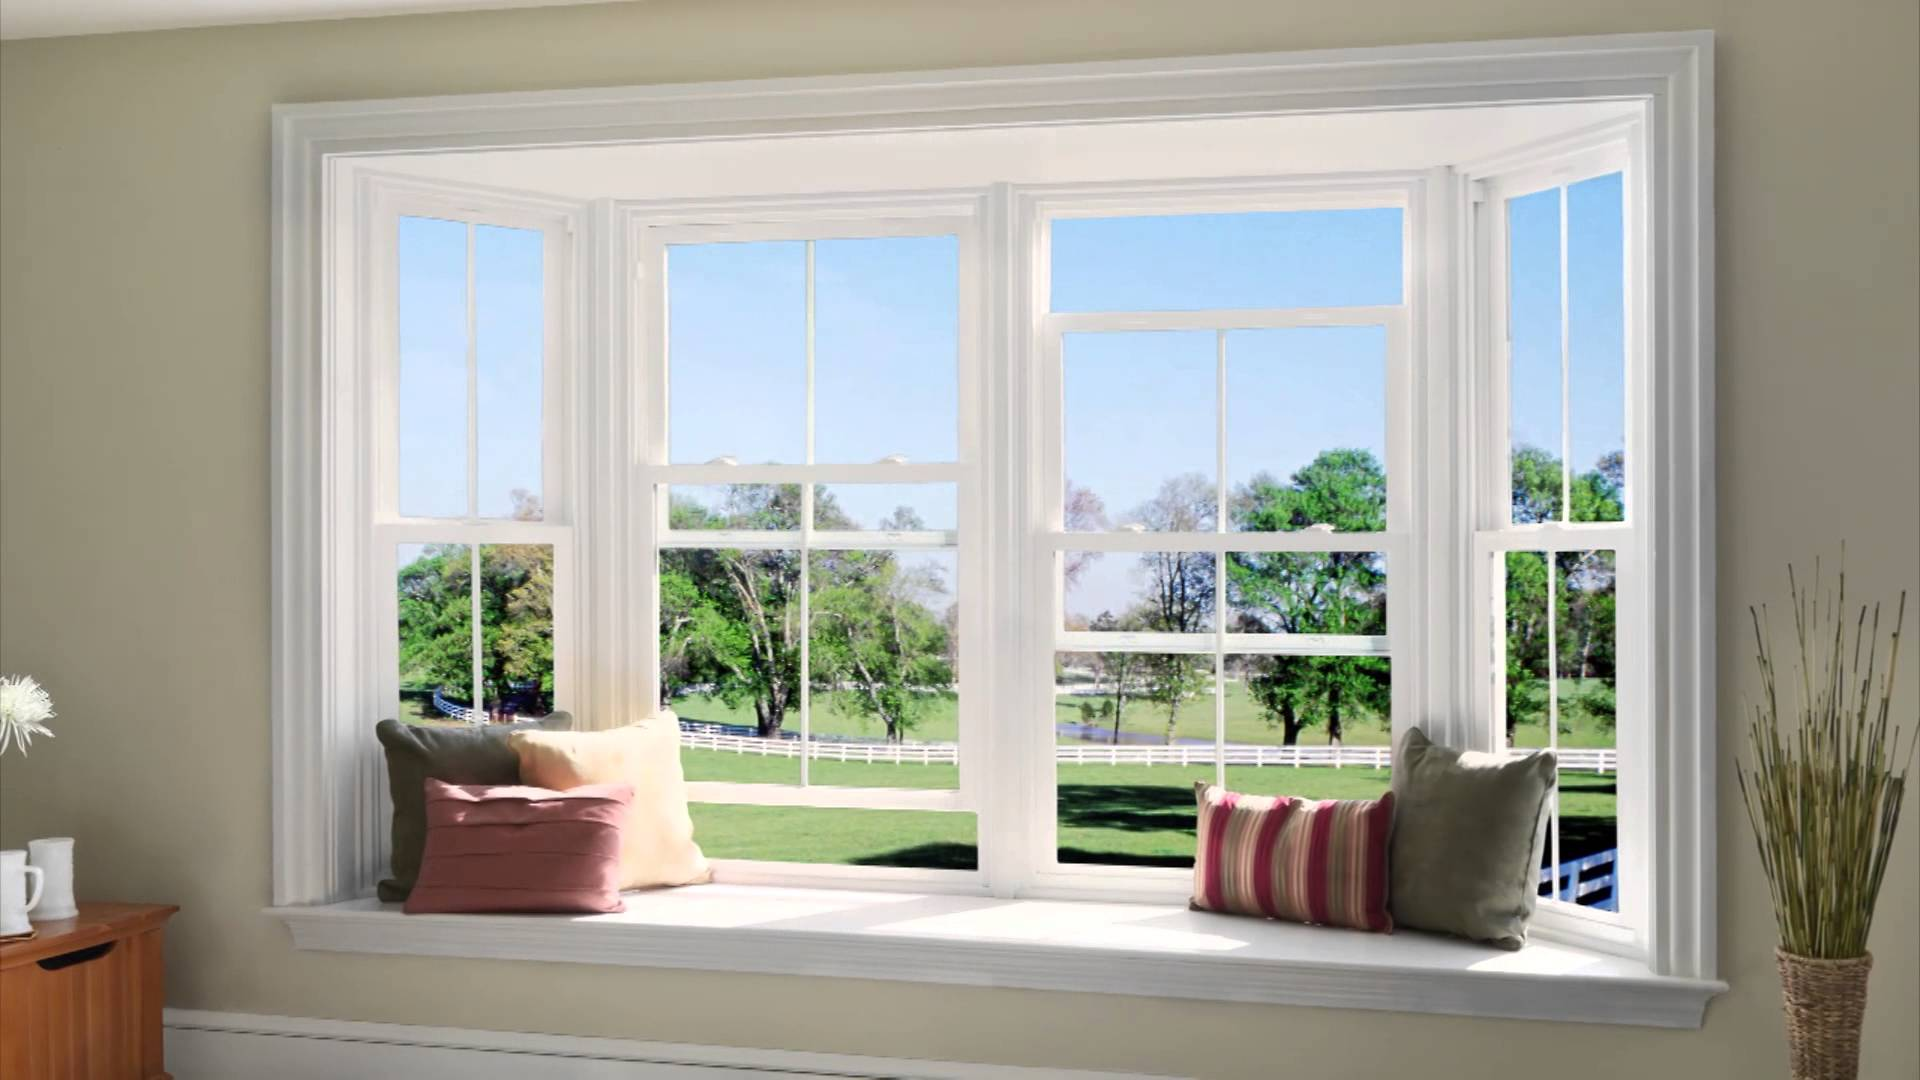 Vinyl windows - What Are the Pros and Cons of Using Vinyl Windows?